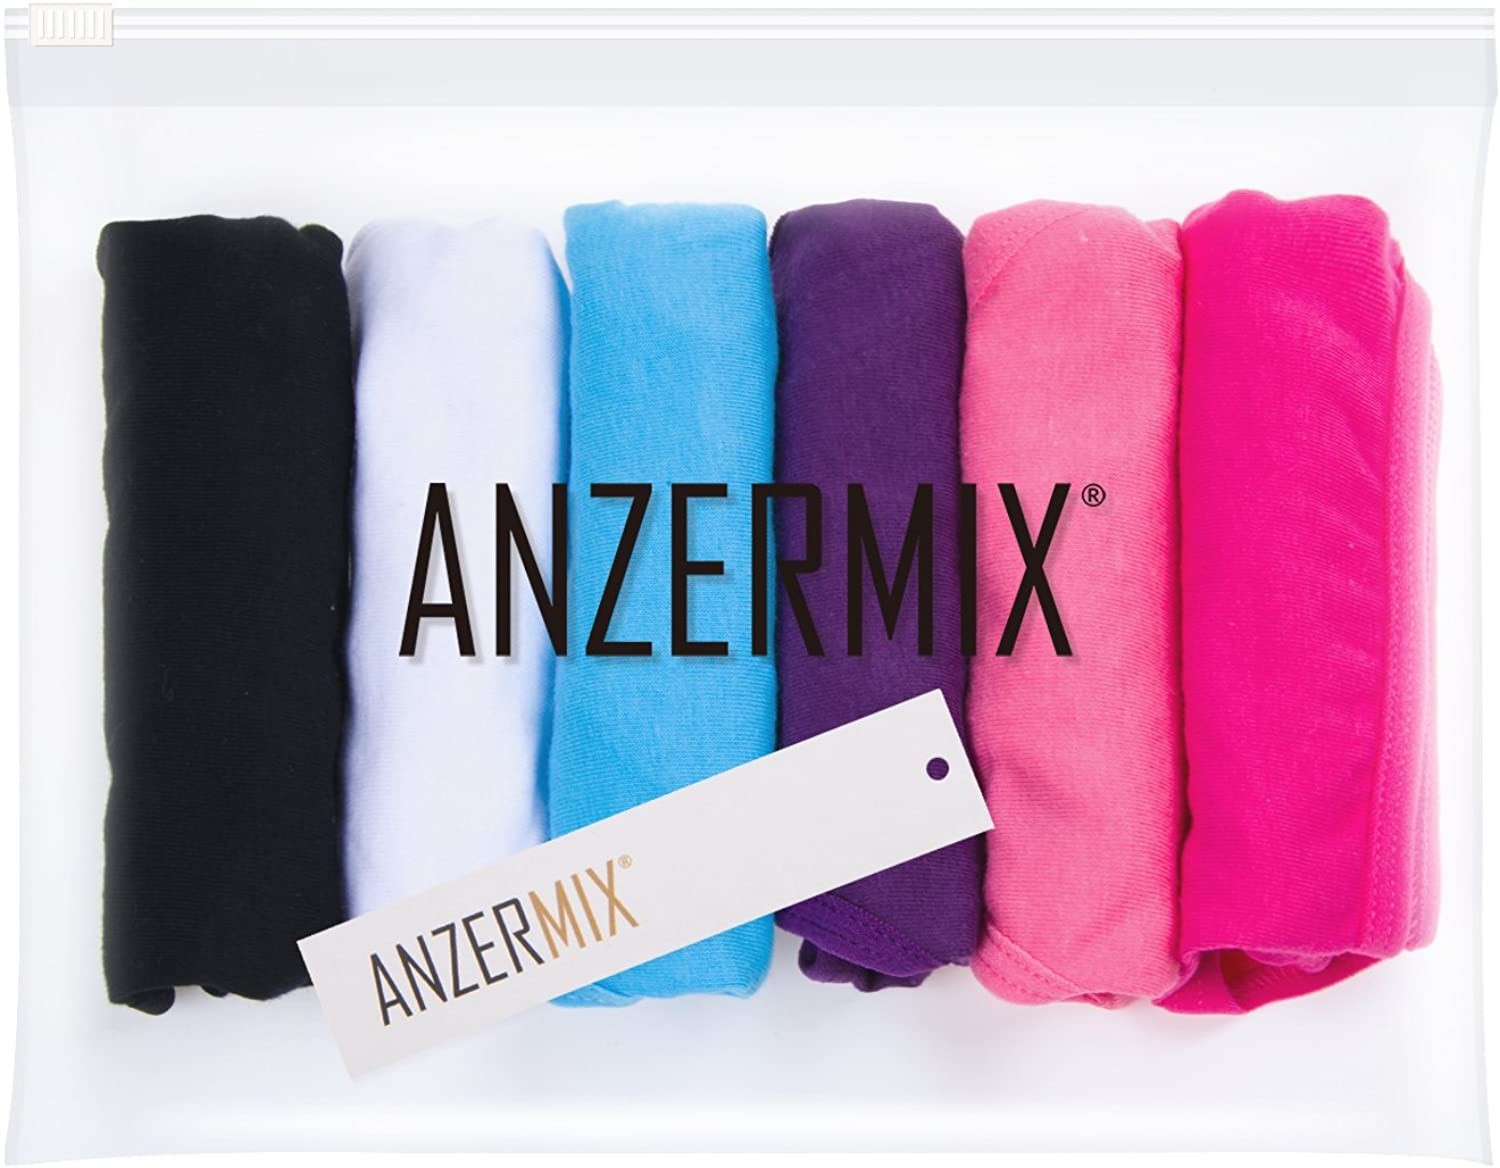 Anzermix Womens Breathable Cotton Tong Panties Pack of 6